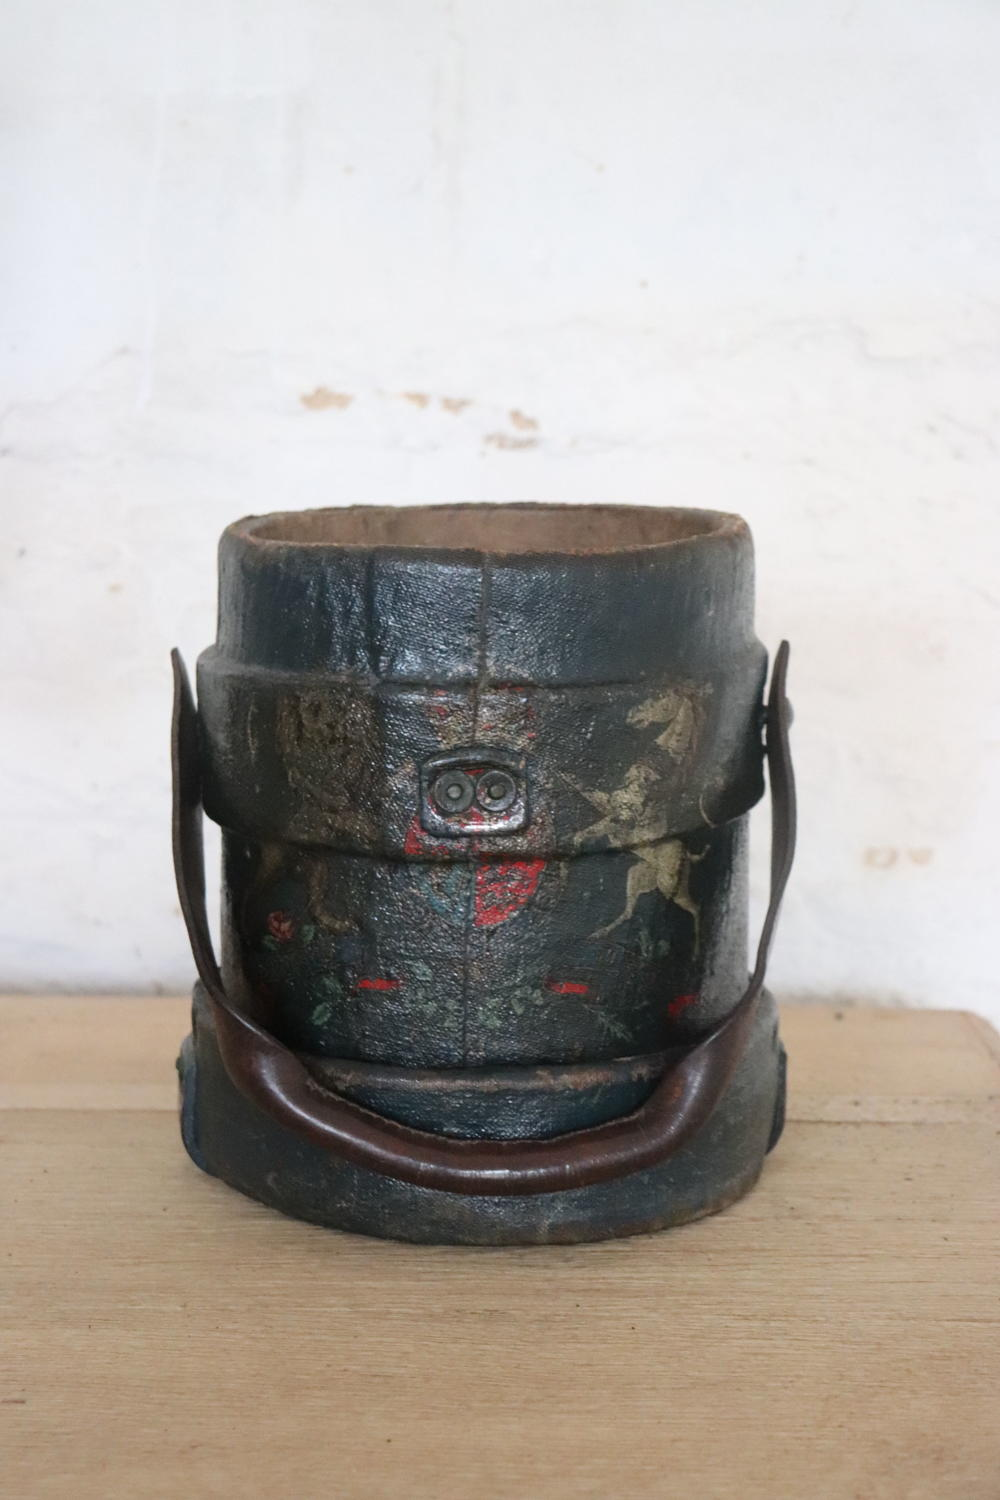 Victorian artillery canvas shell carrier with painted crest